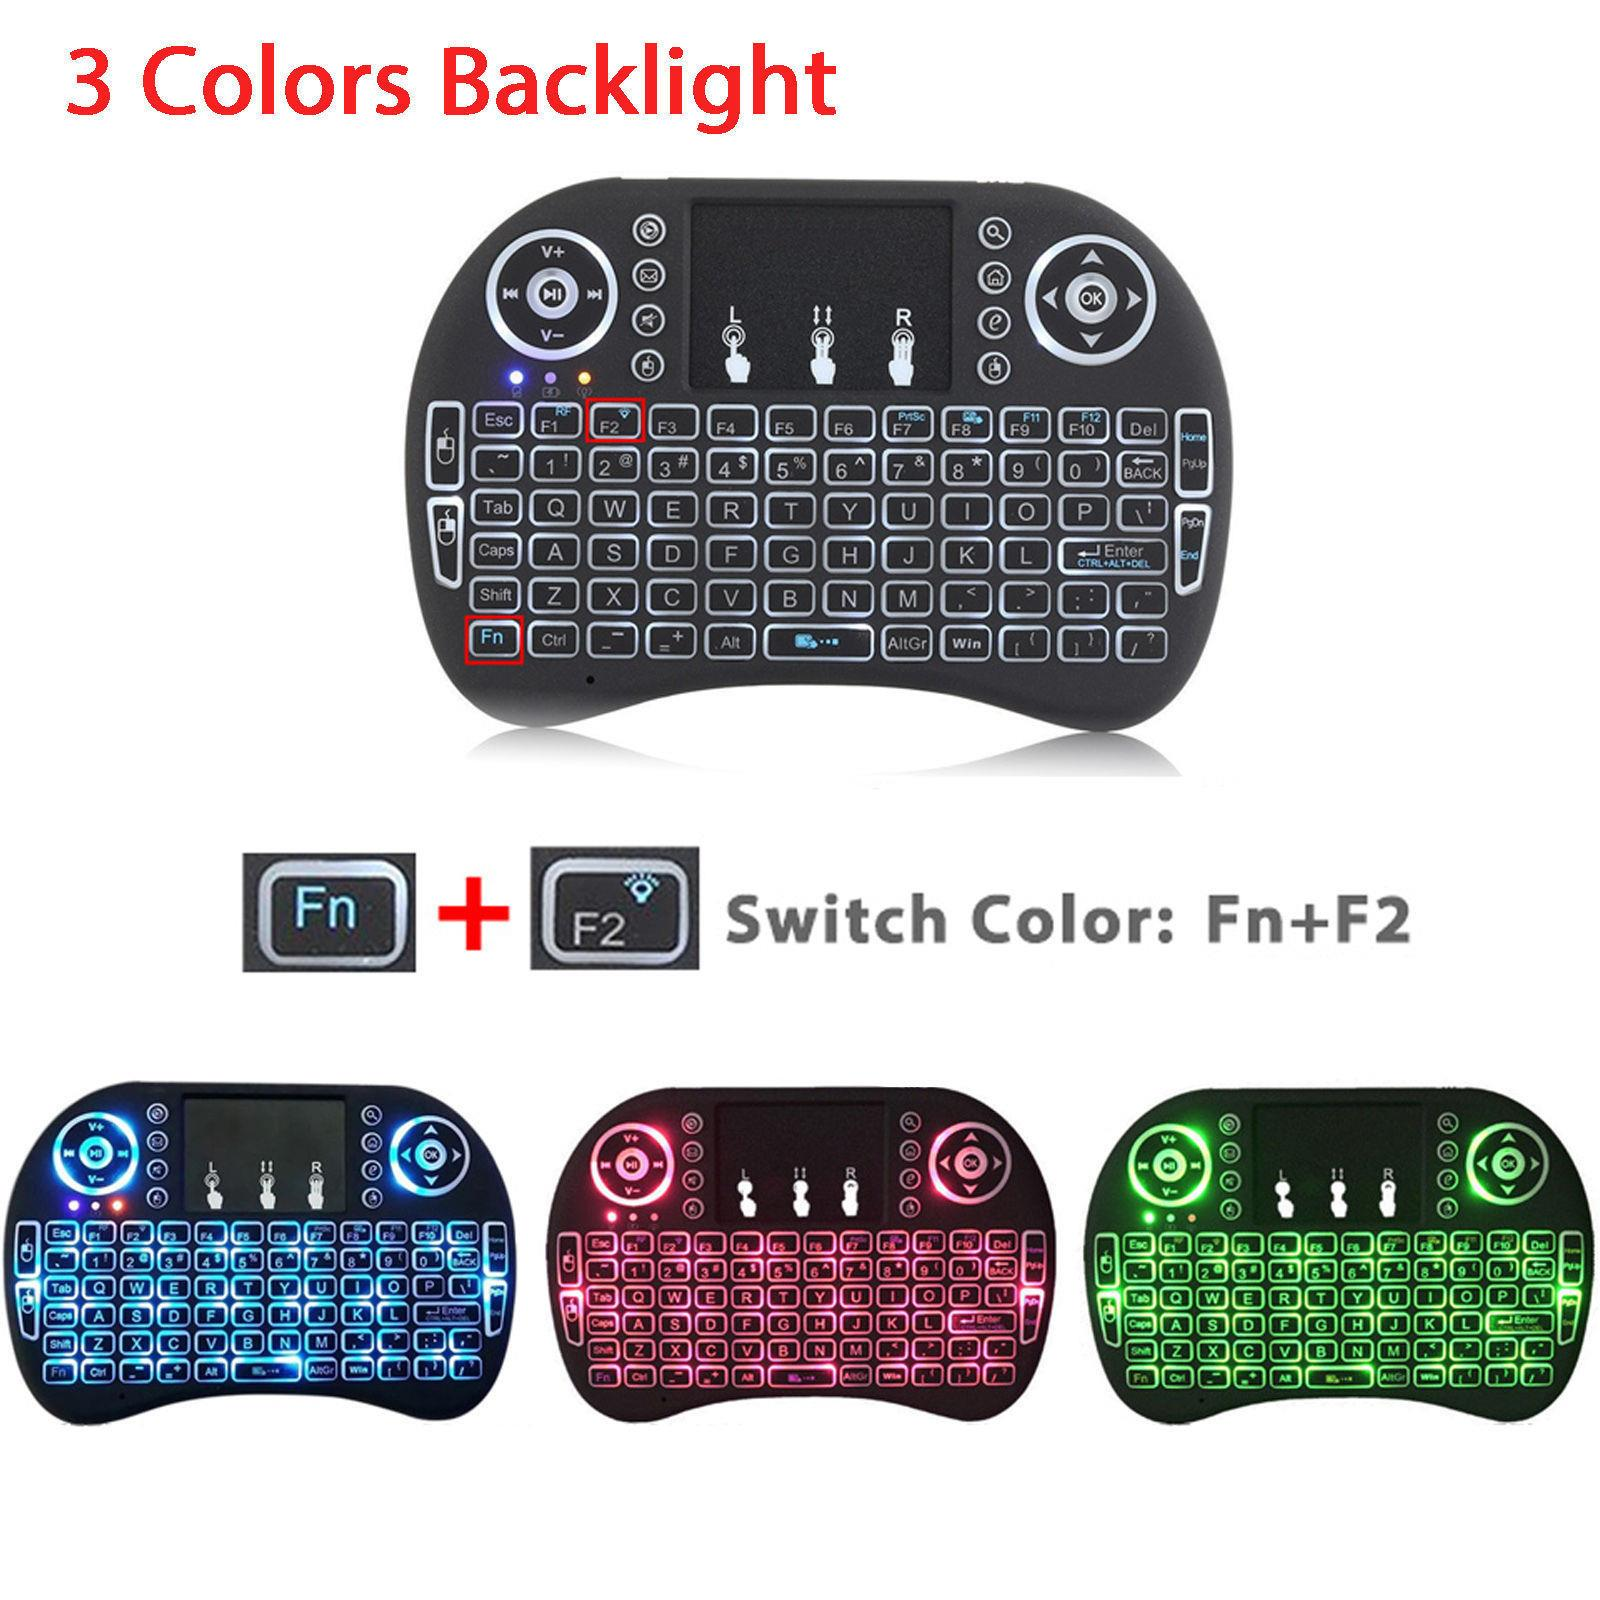 Calvas Mini Backlit Keyboard USB 2.4 GHz Wireless Air Mouse Touchpad Keyboard handheld Remote Control for Android TV BOX Smart TV PC Color: Li-ion Battery